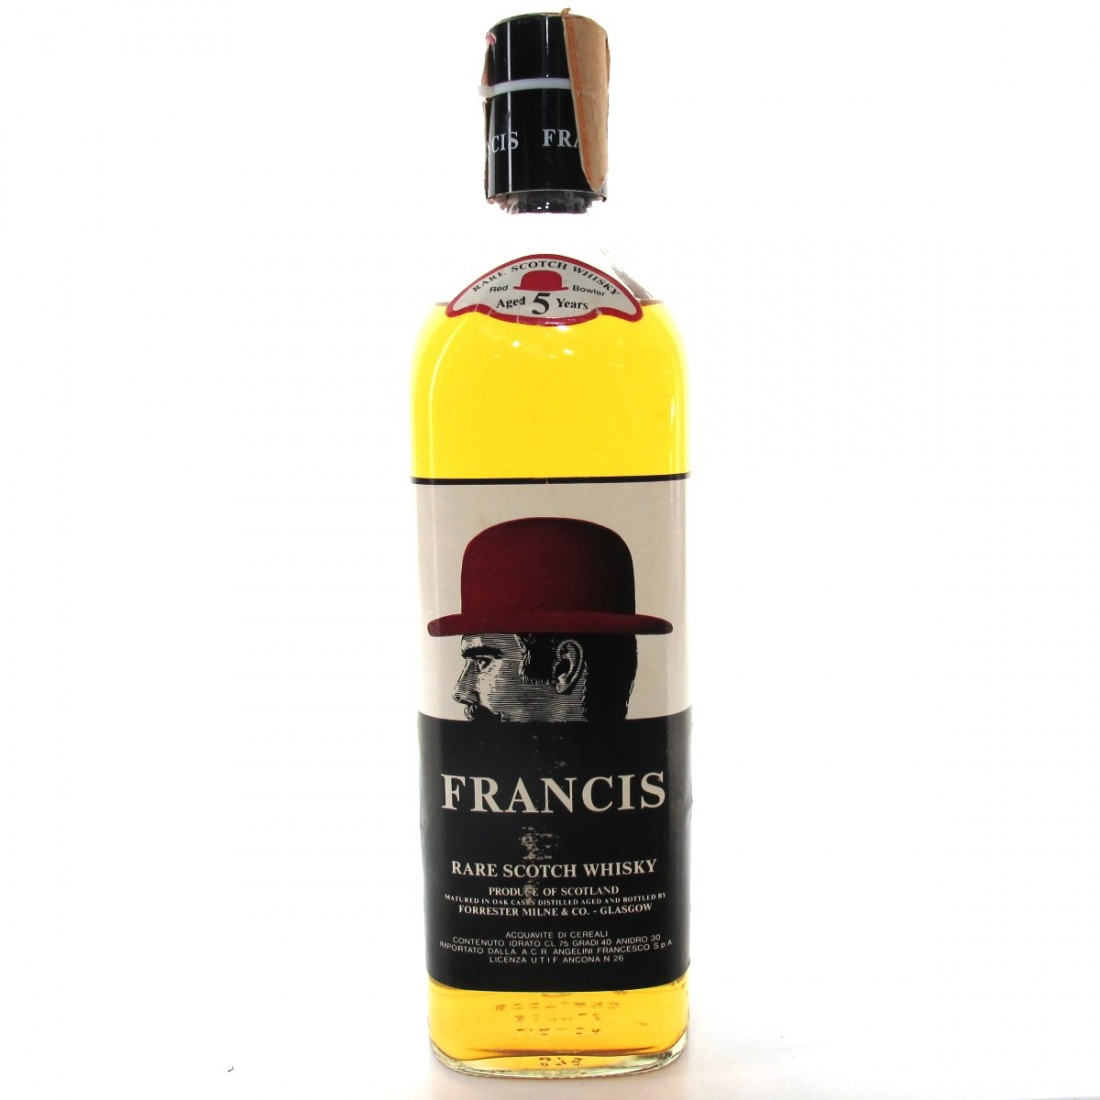 Francis 5 Year Old Scotch Whisky 1970s